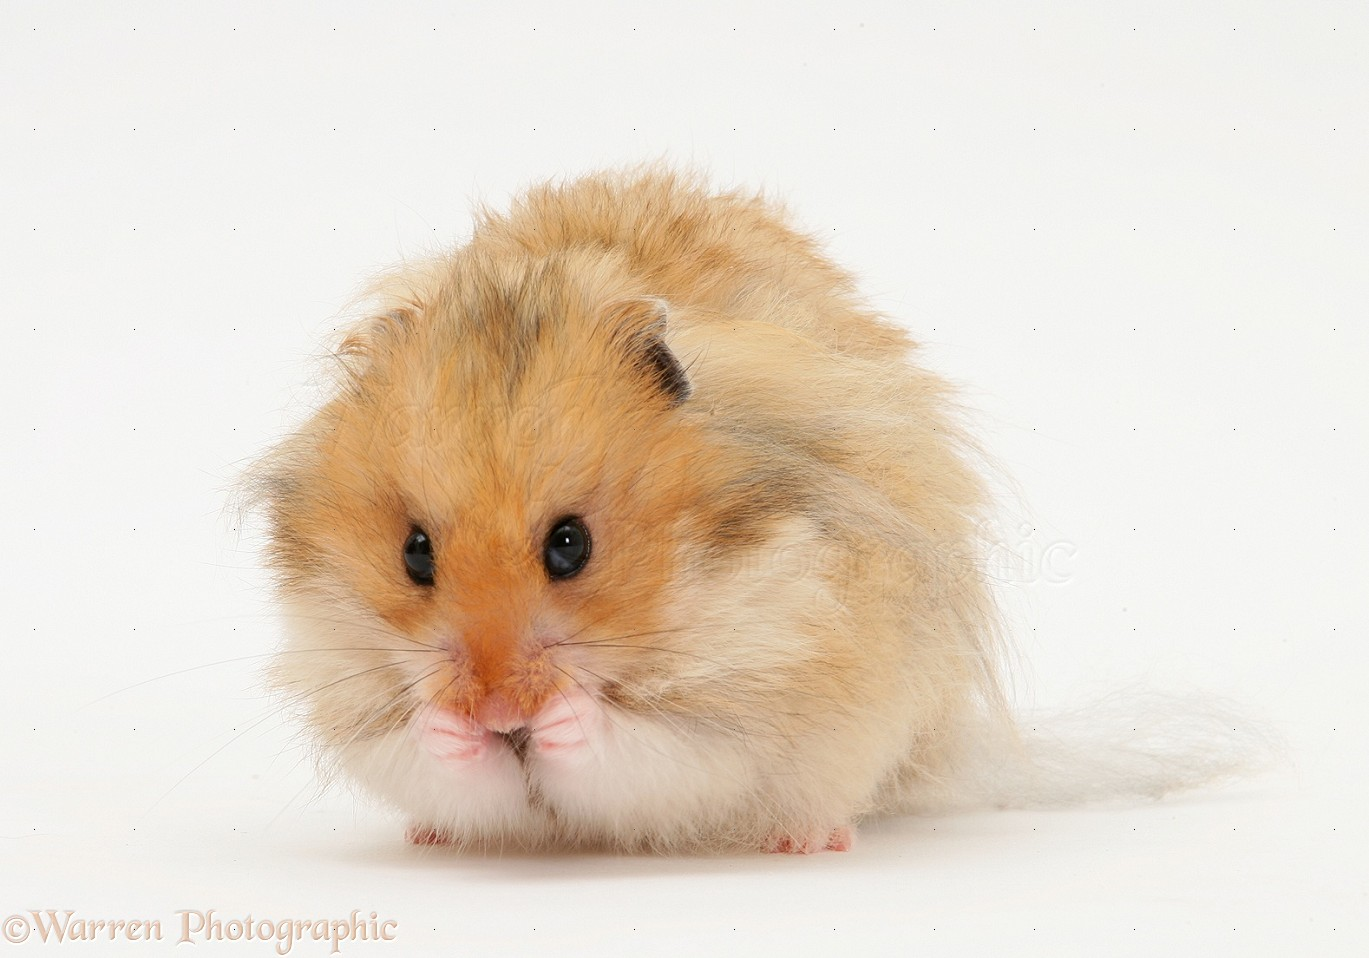 Long-haired Syrian Hamster photo - WP17229